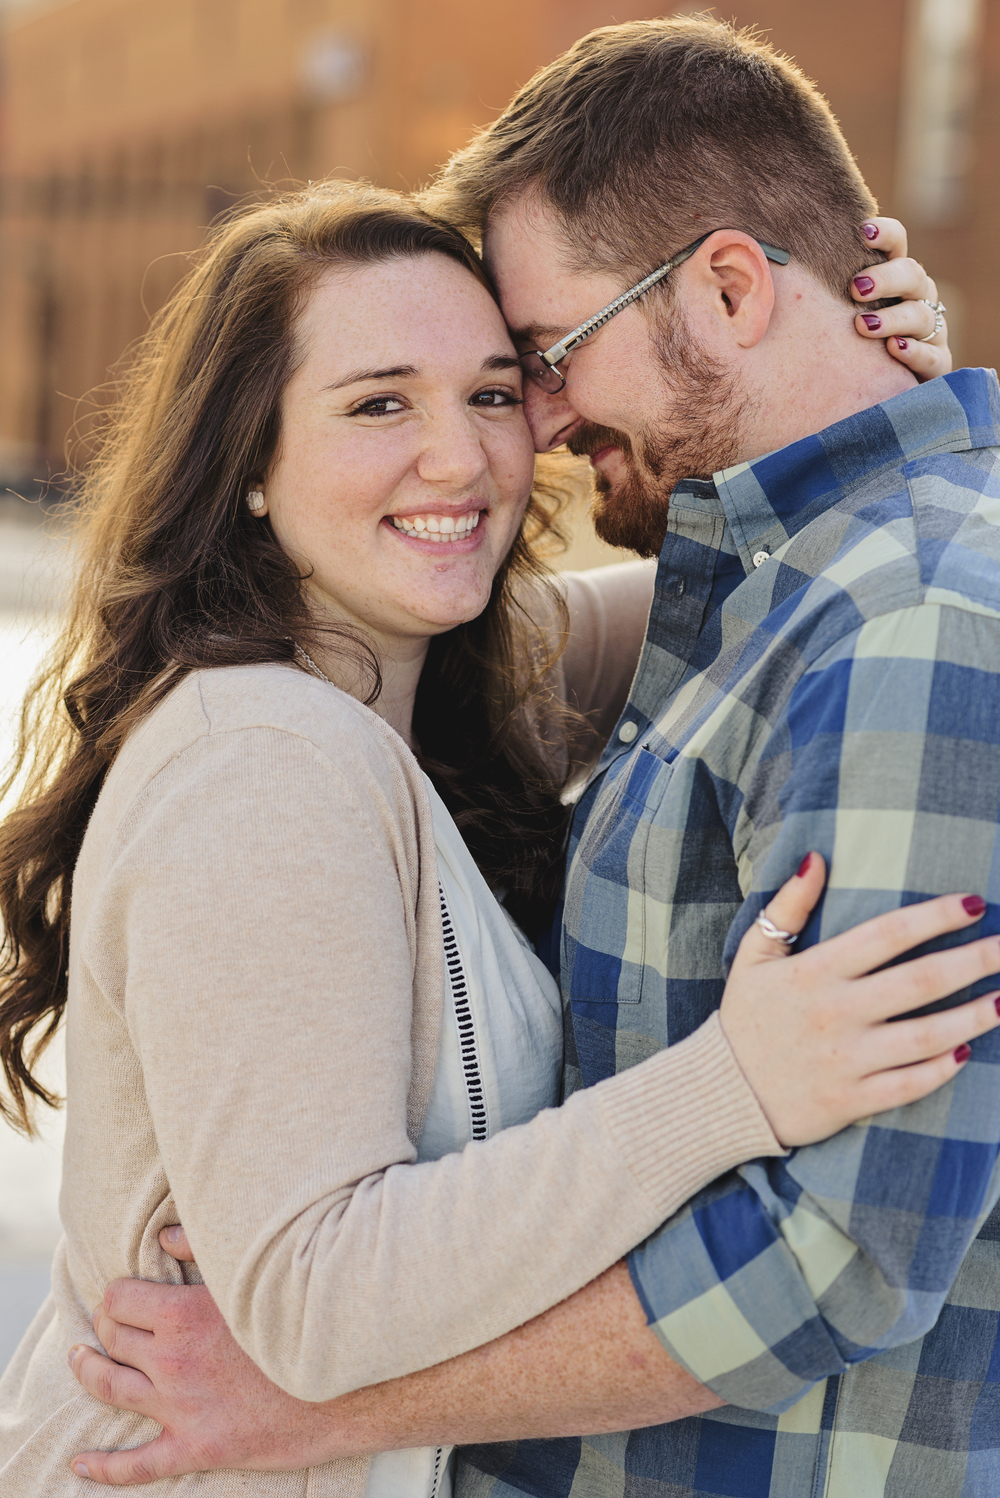 downtown_bookstore_engagement_session_lynchburg_va041.jpg